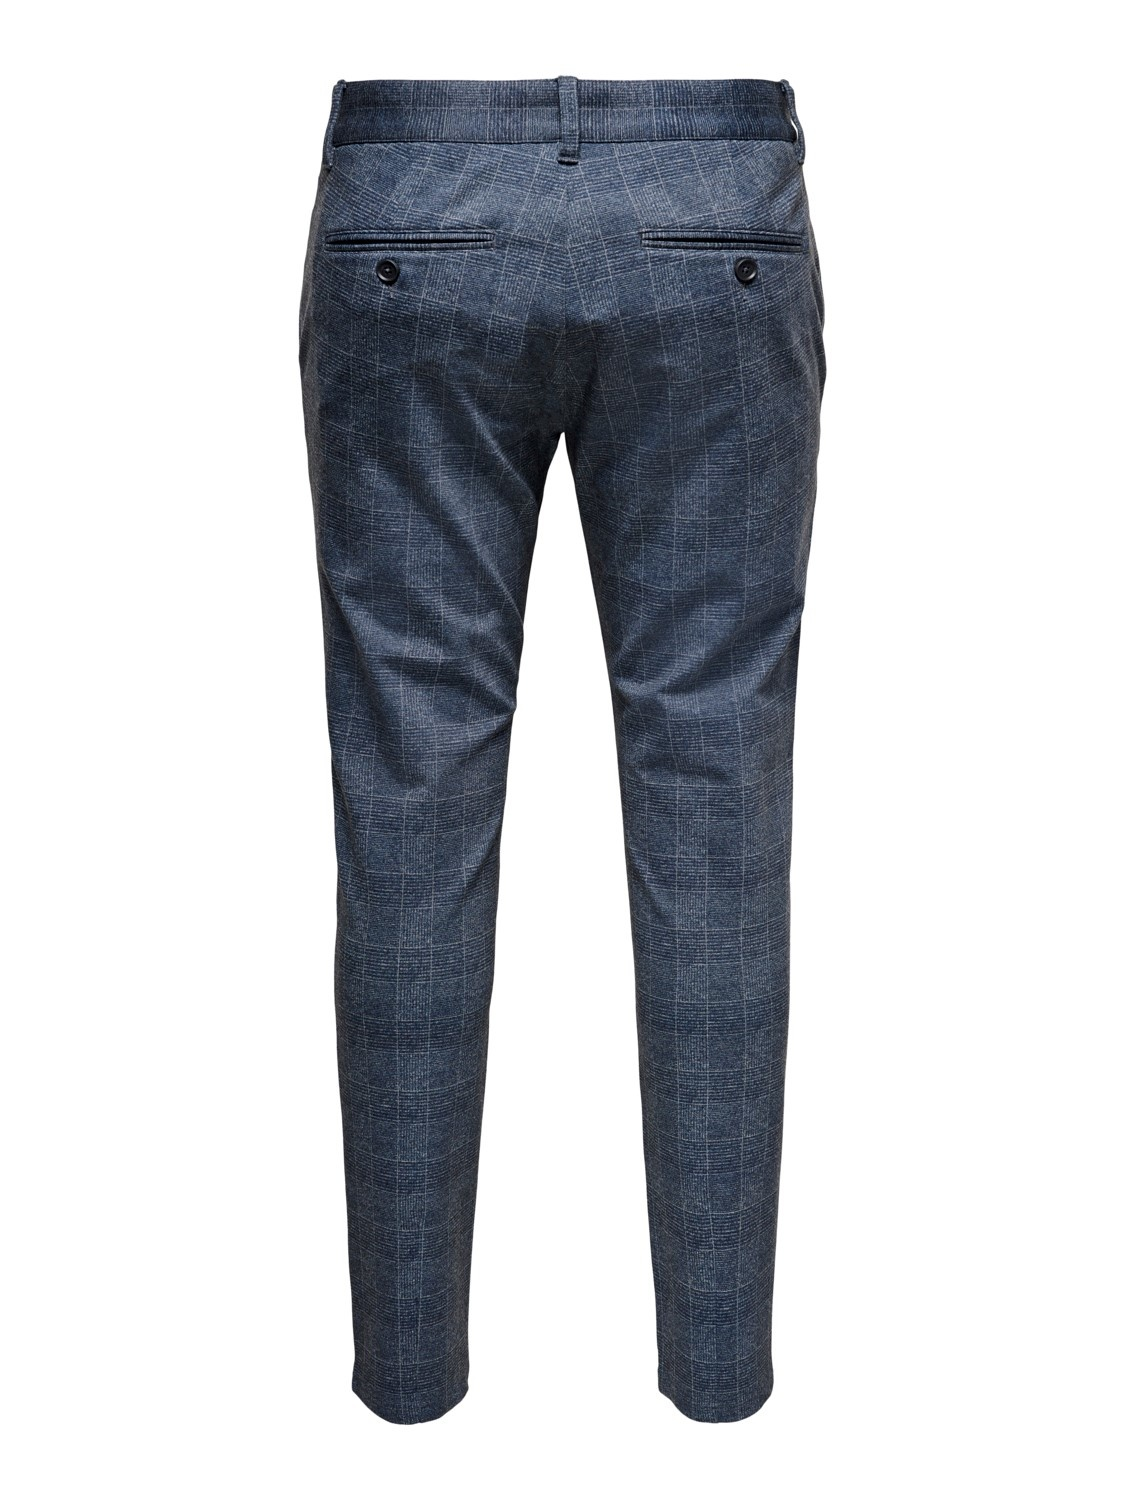 Only & Sons Onsmark Pant Check 9887 Noos